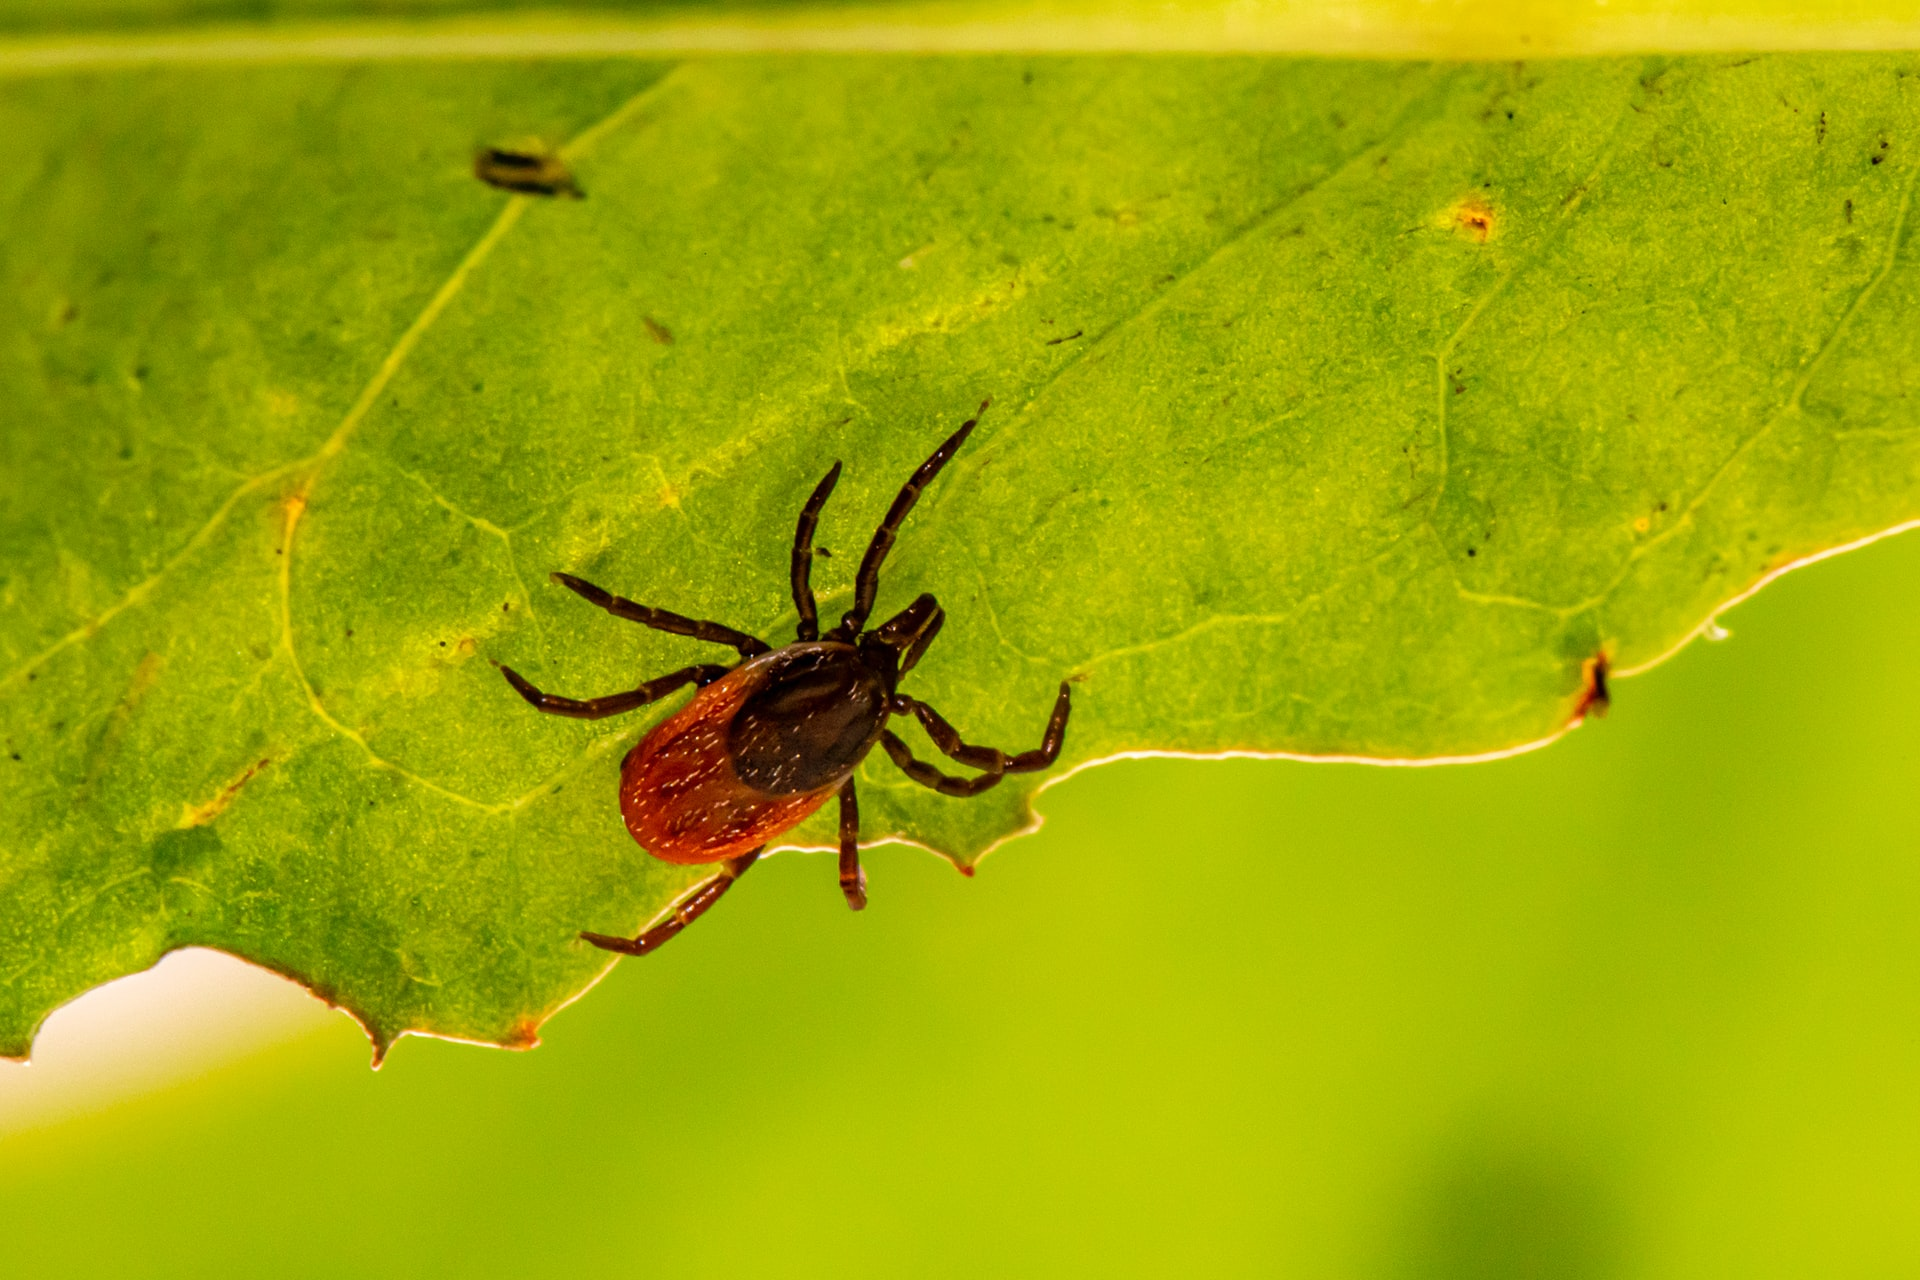 Lyme Disease Information and Resources